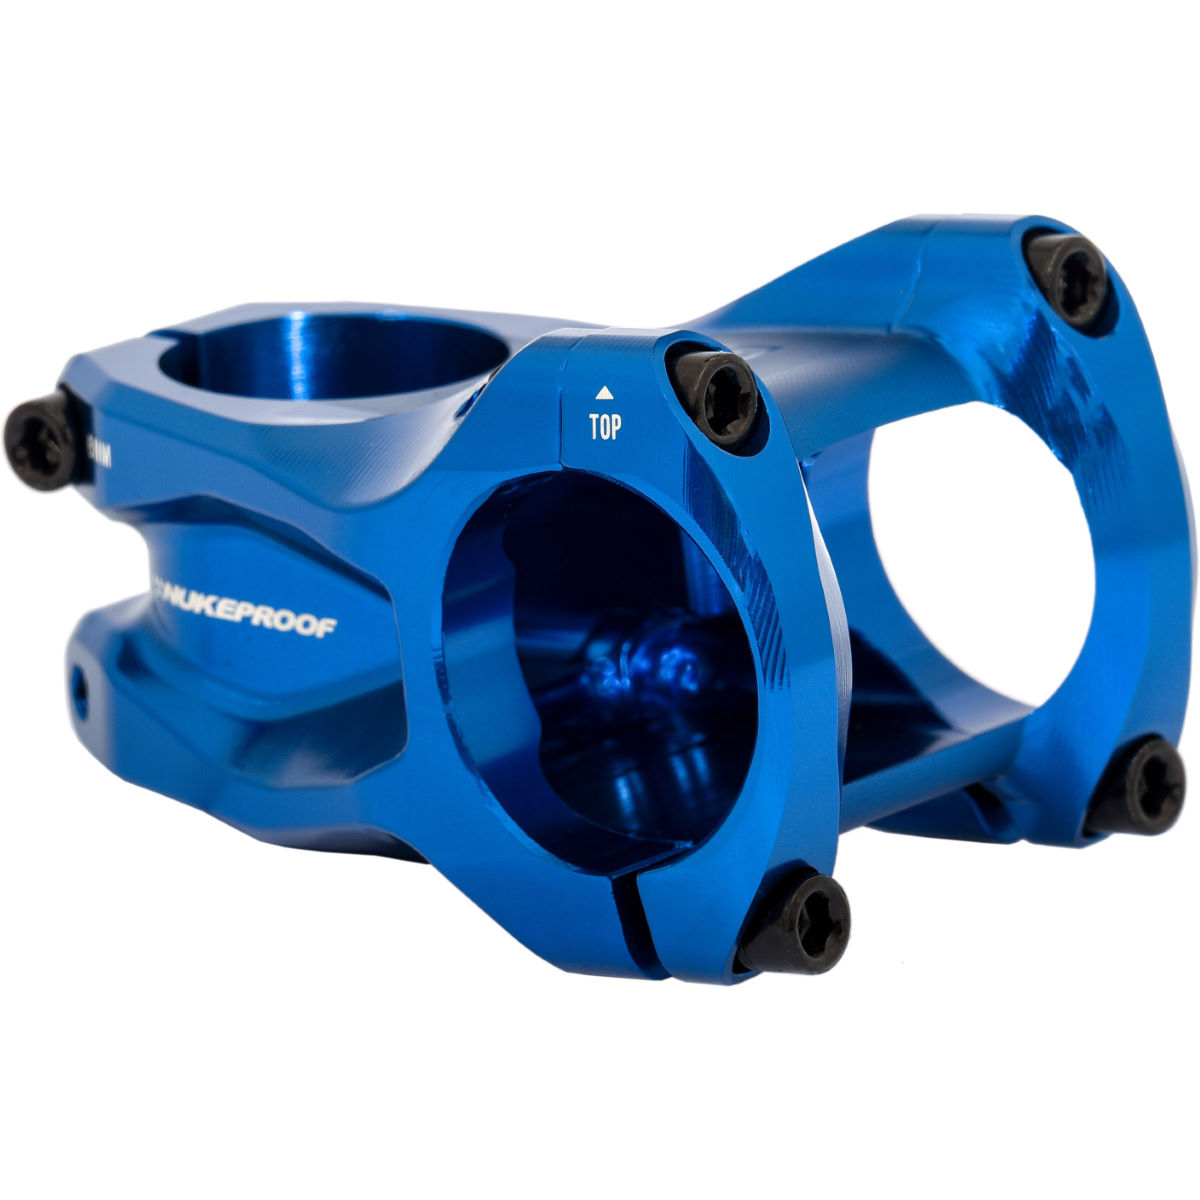 Potence Nukeproof Horizon - 31.8mm x 50mm Bleu Potences